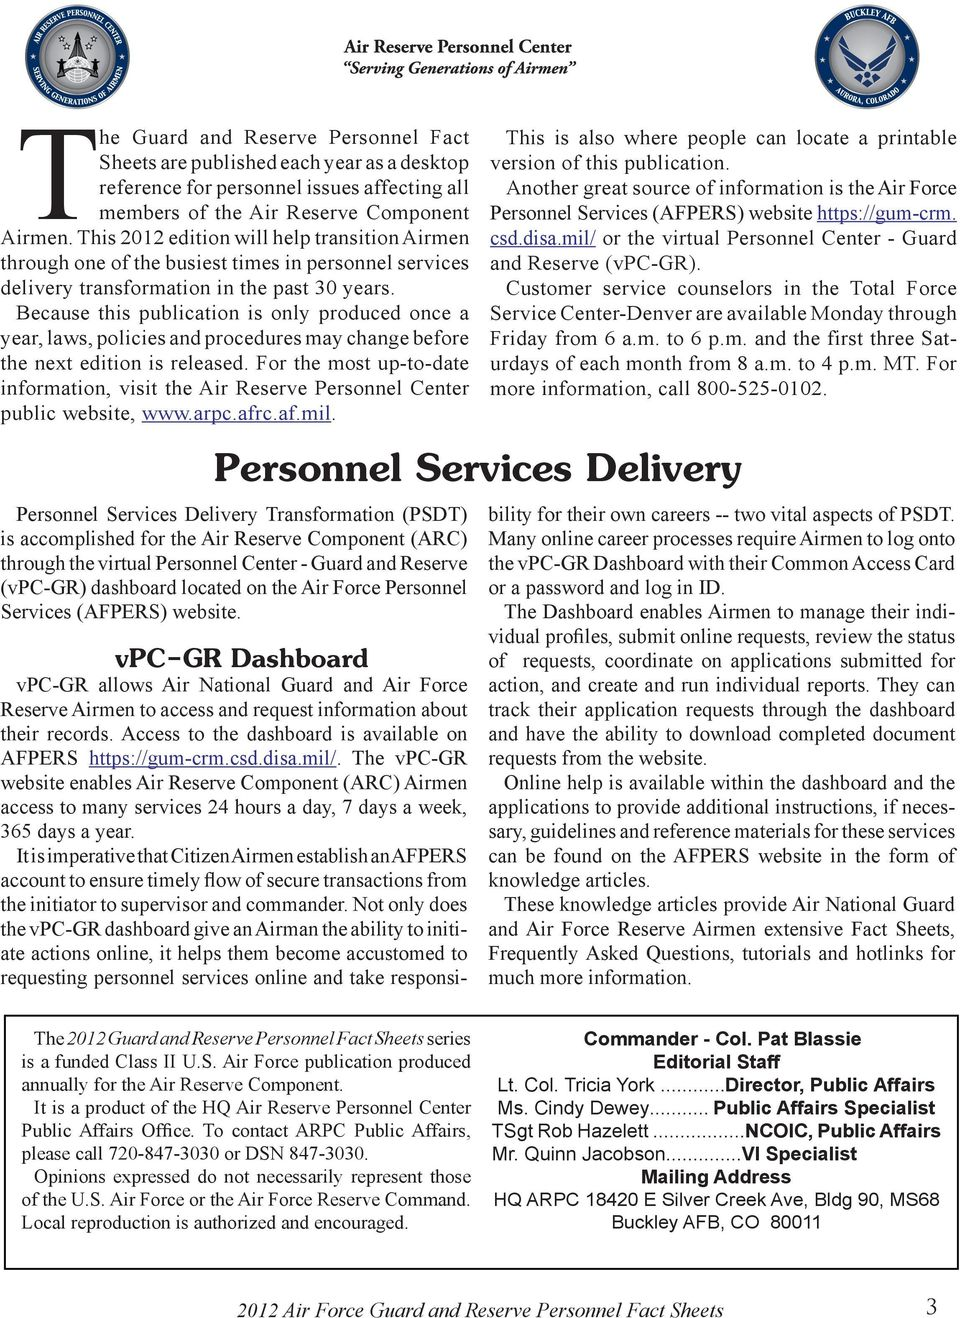 Table of Contents Air Force Guard and Reserve Personnel Fact